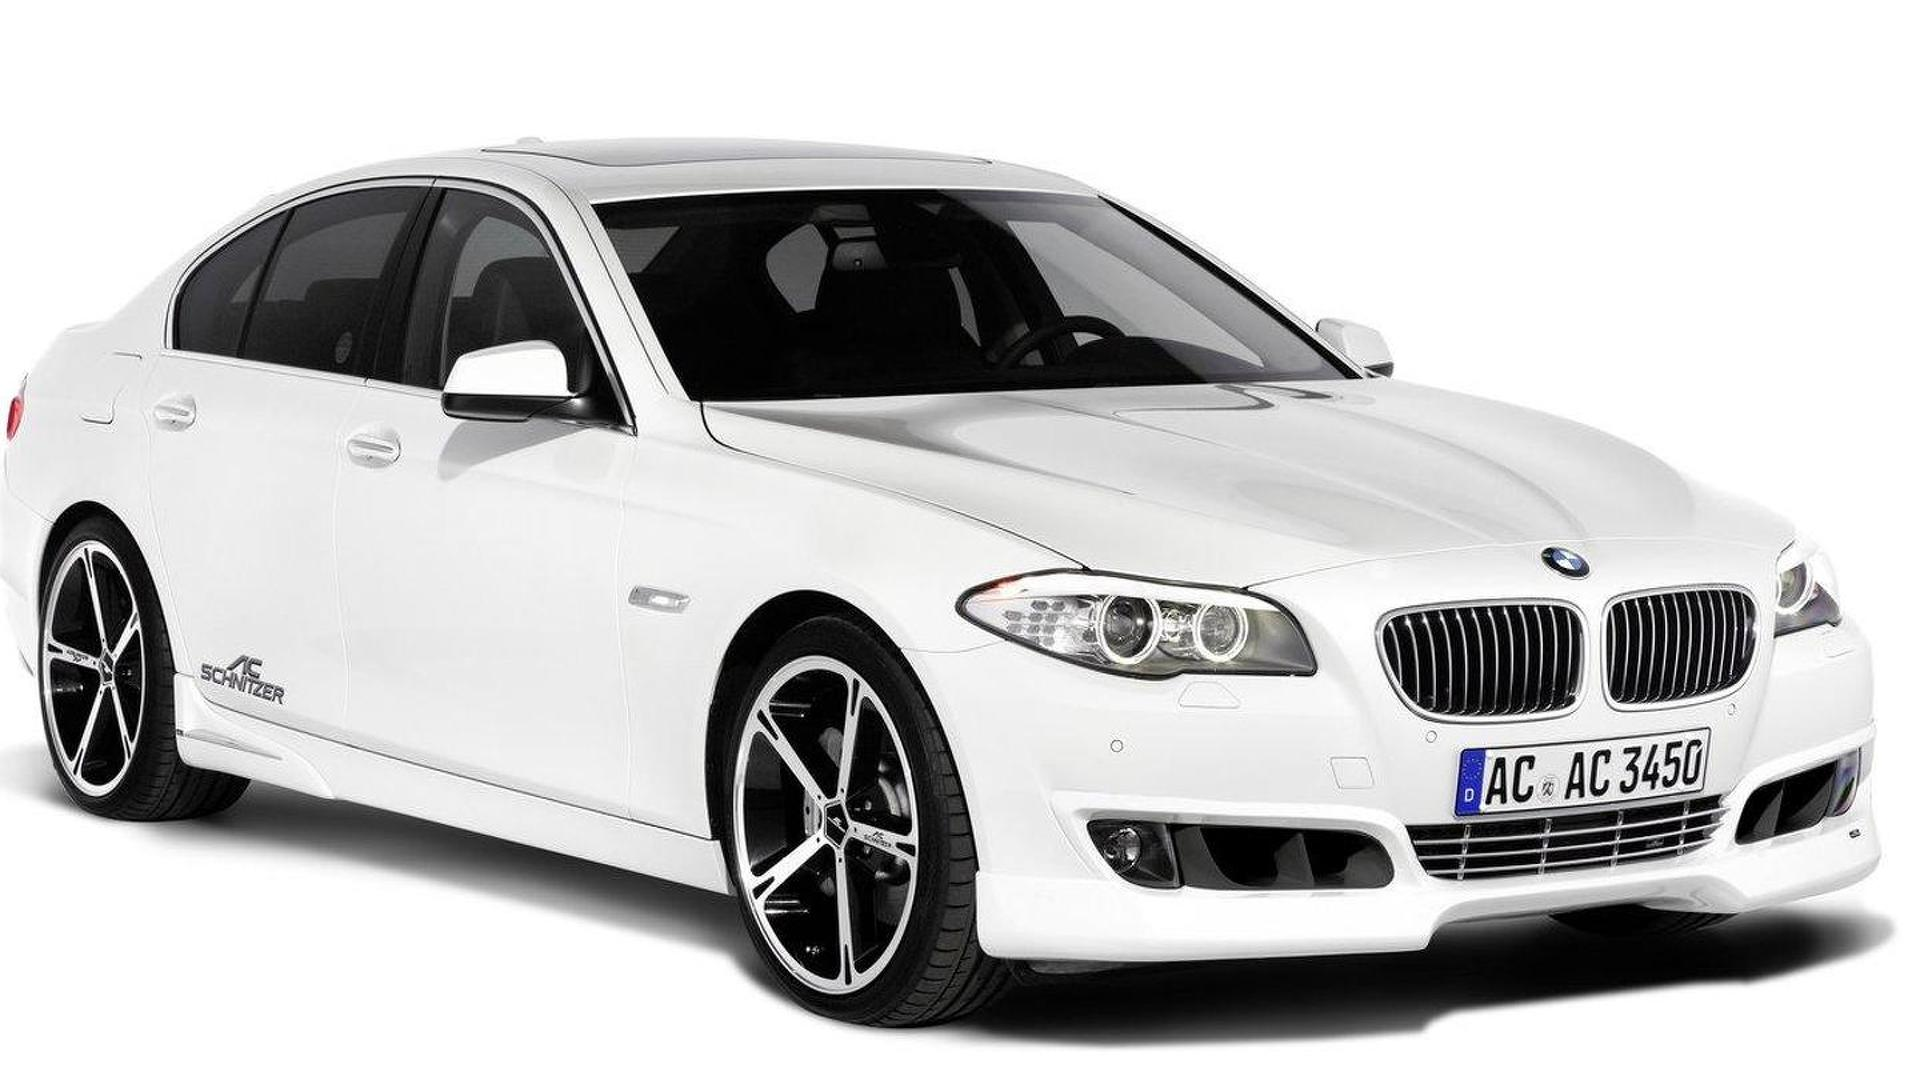 AC Schnitzer 5-Series F10 initial styling kit revealed